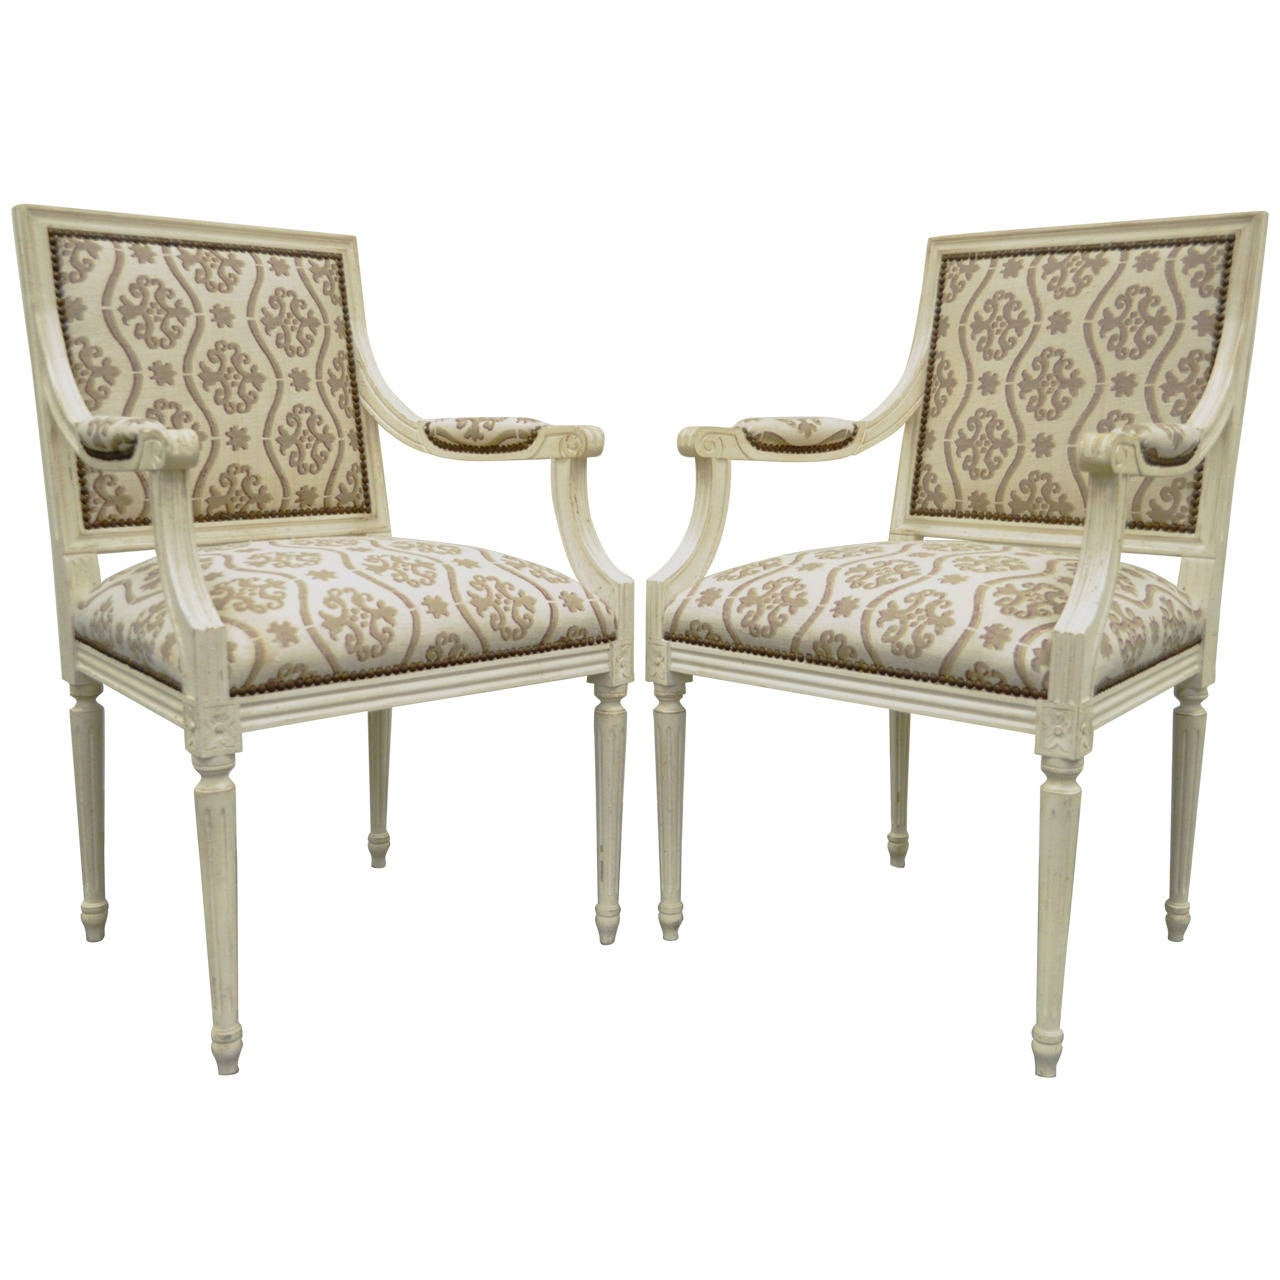 pair of french louis xvi style distress painted fauteuils or armchairs at 1stdibs. Black Bedroom Furniture Sets. Home Design Ideas